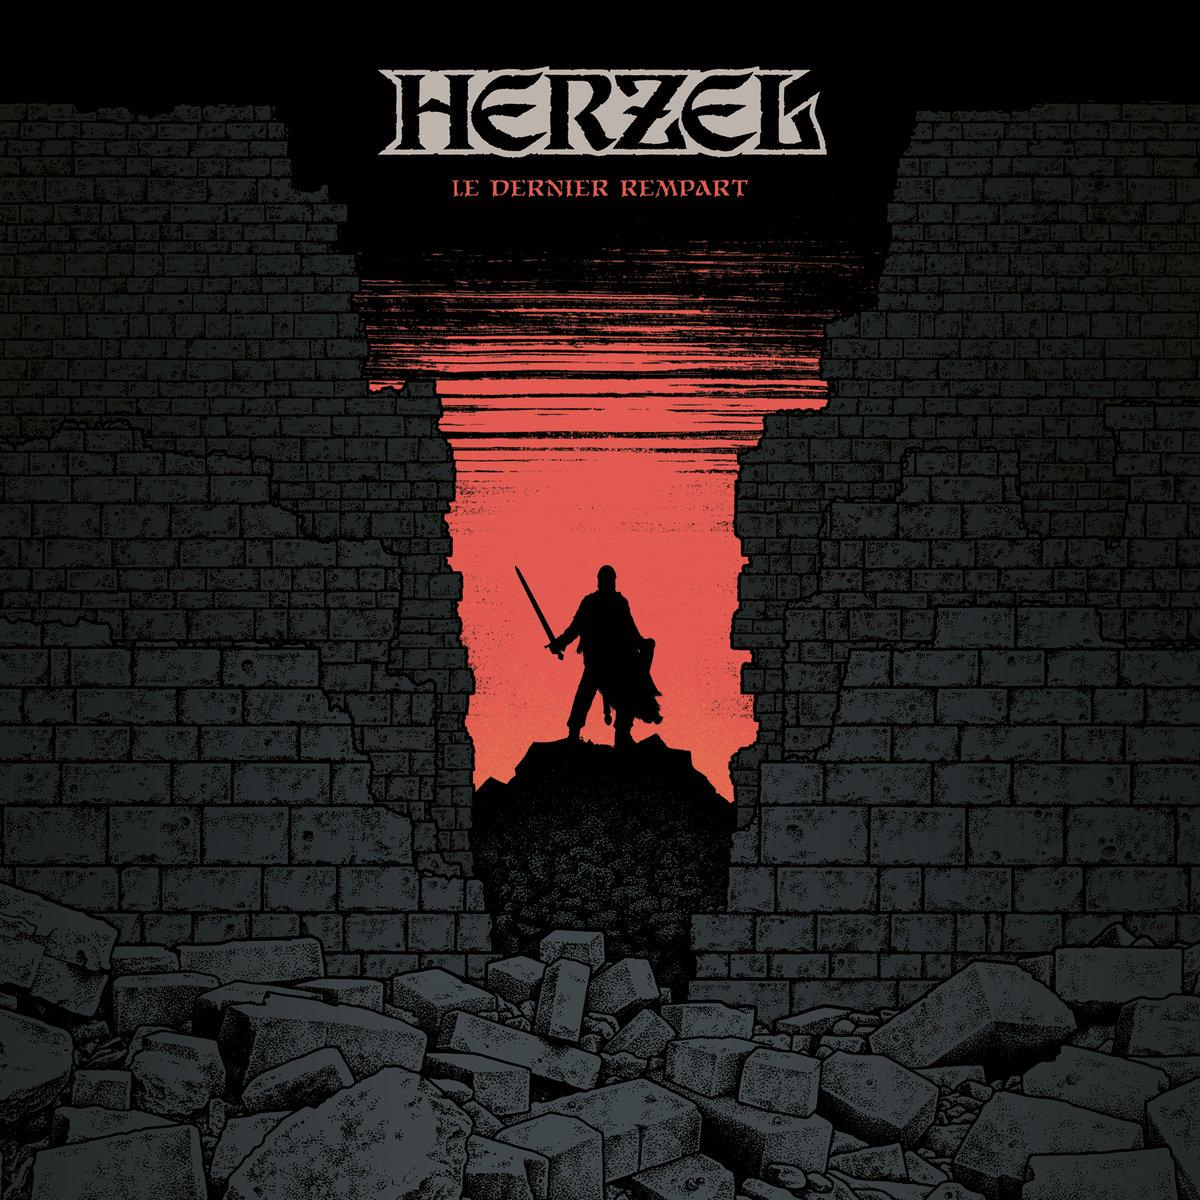 Chronique d'album : HERZEL (Heavy Metal),